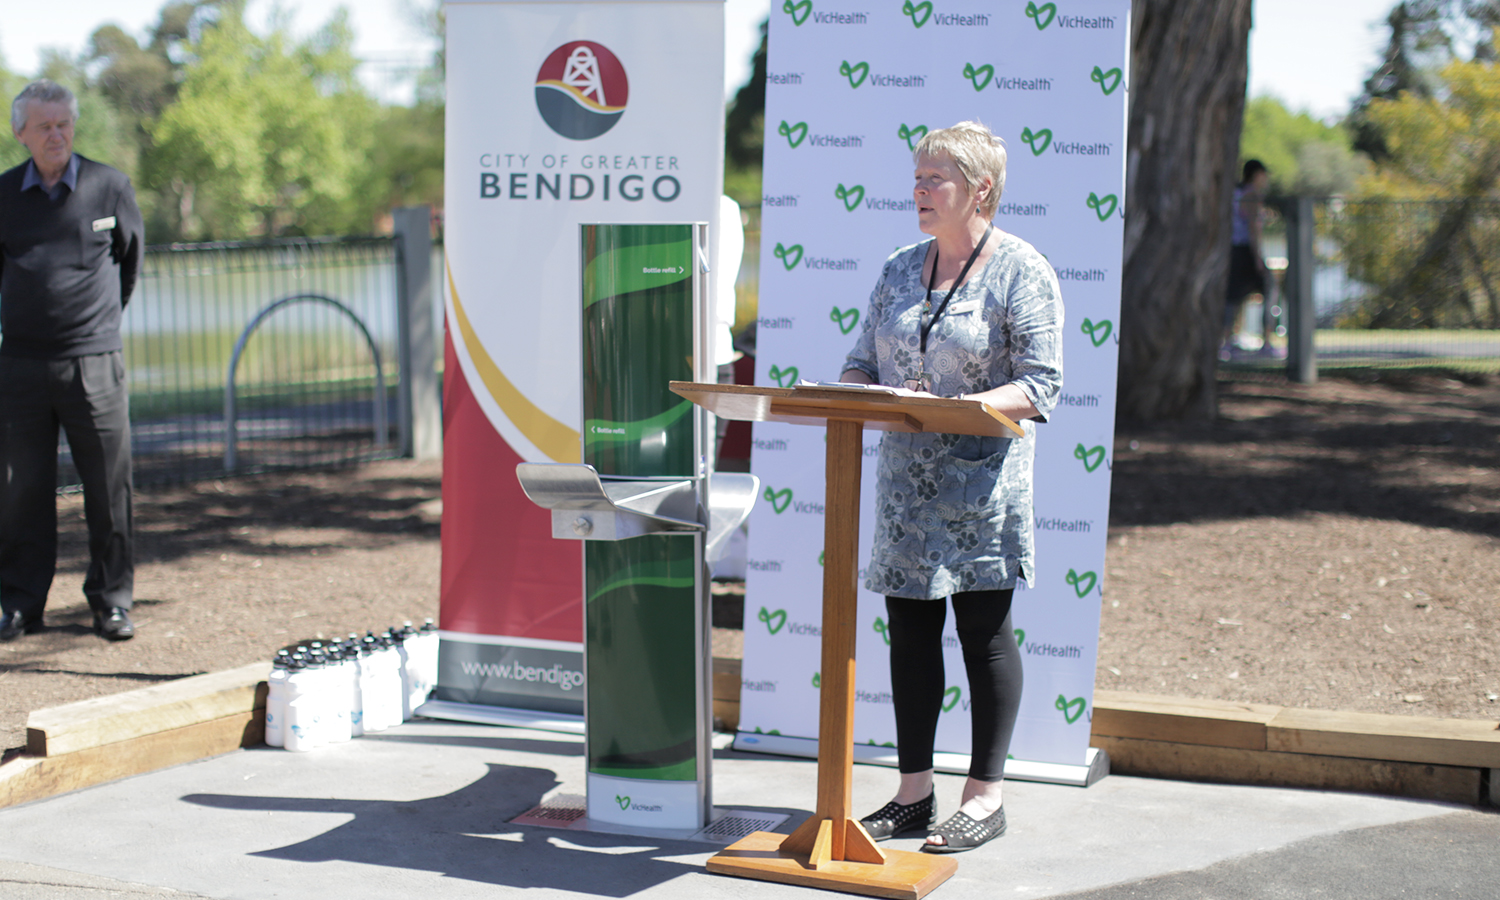 Maree Edwards giving speech on Greater Bendigo Community beside next to Aquafil FlexiFountain 1500BFF Drinking Fountain and Water bottle refill station